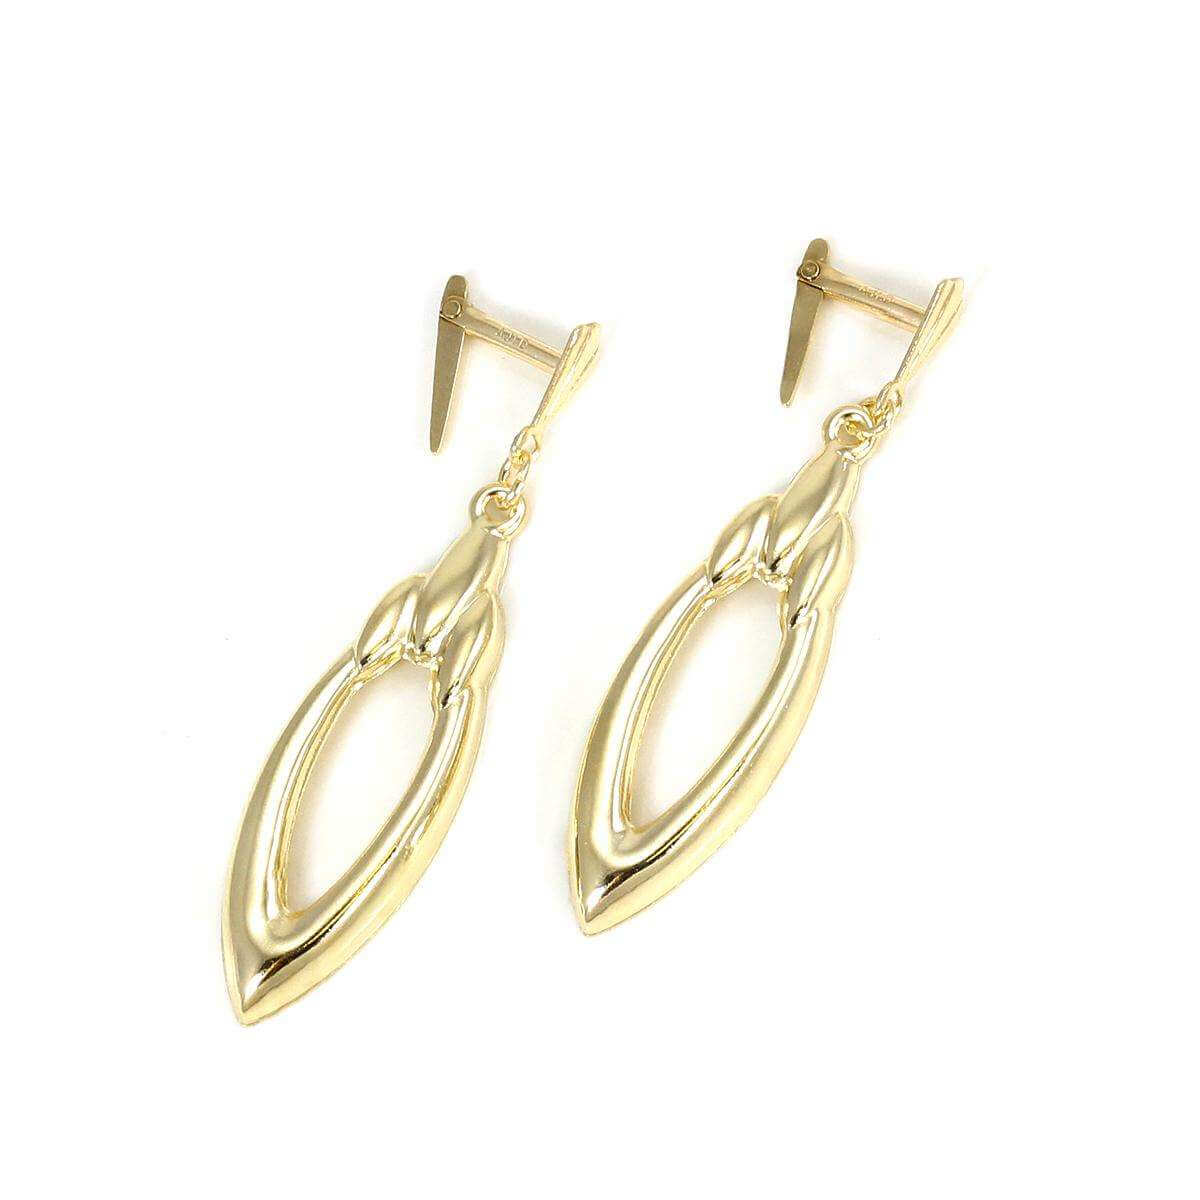 Andralok 9ct Yellow Gold Oval Drop Earrings